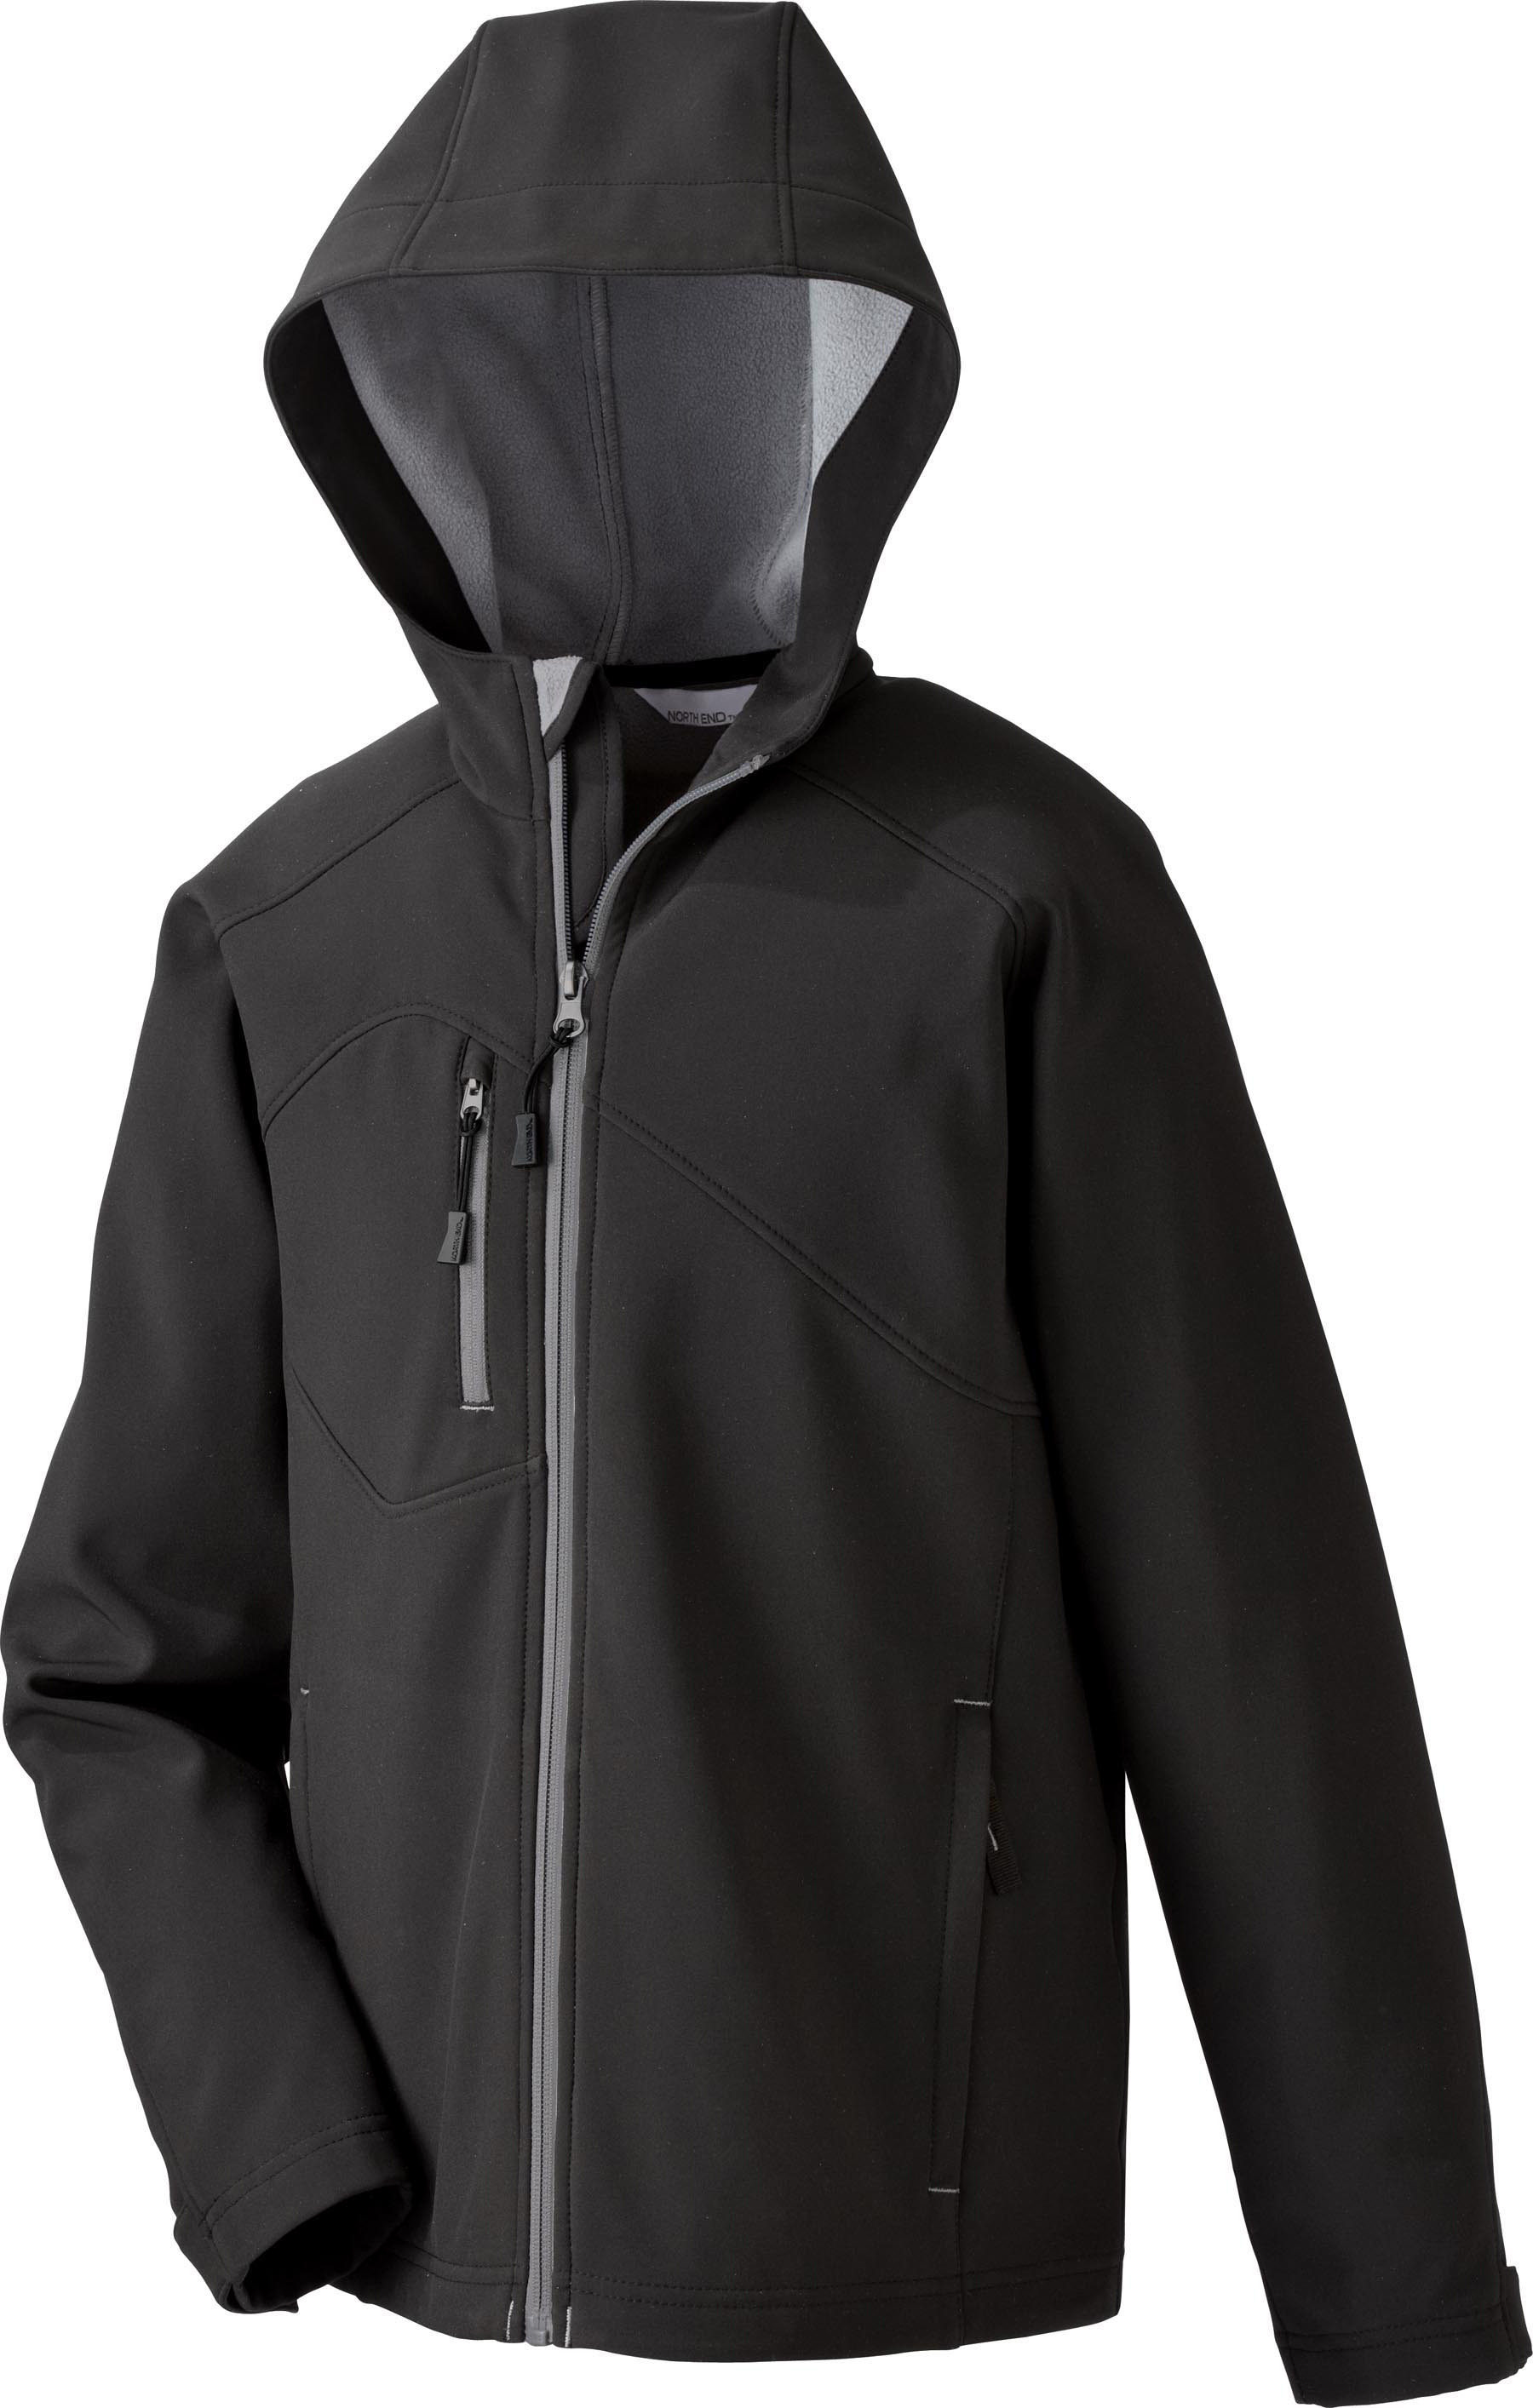 Ash City UTK 1 Warm.Logik 68166 - Prospect Youth Soft Shell Jacket With Hood